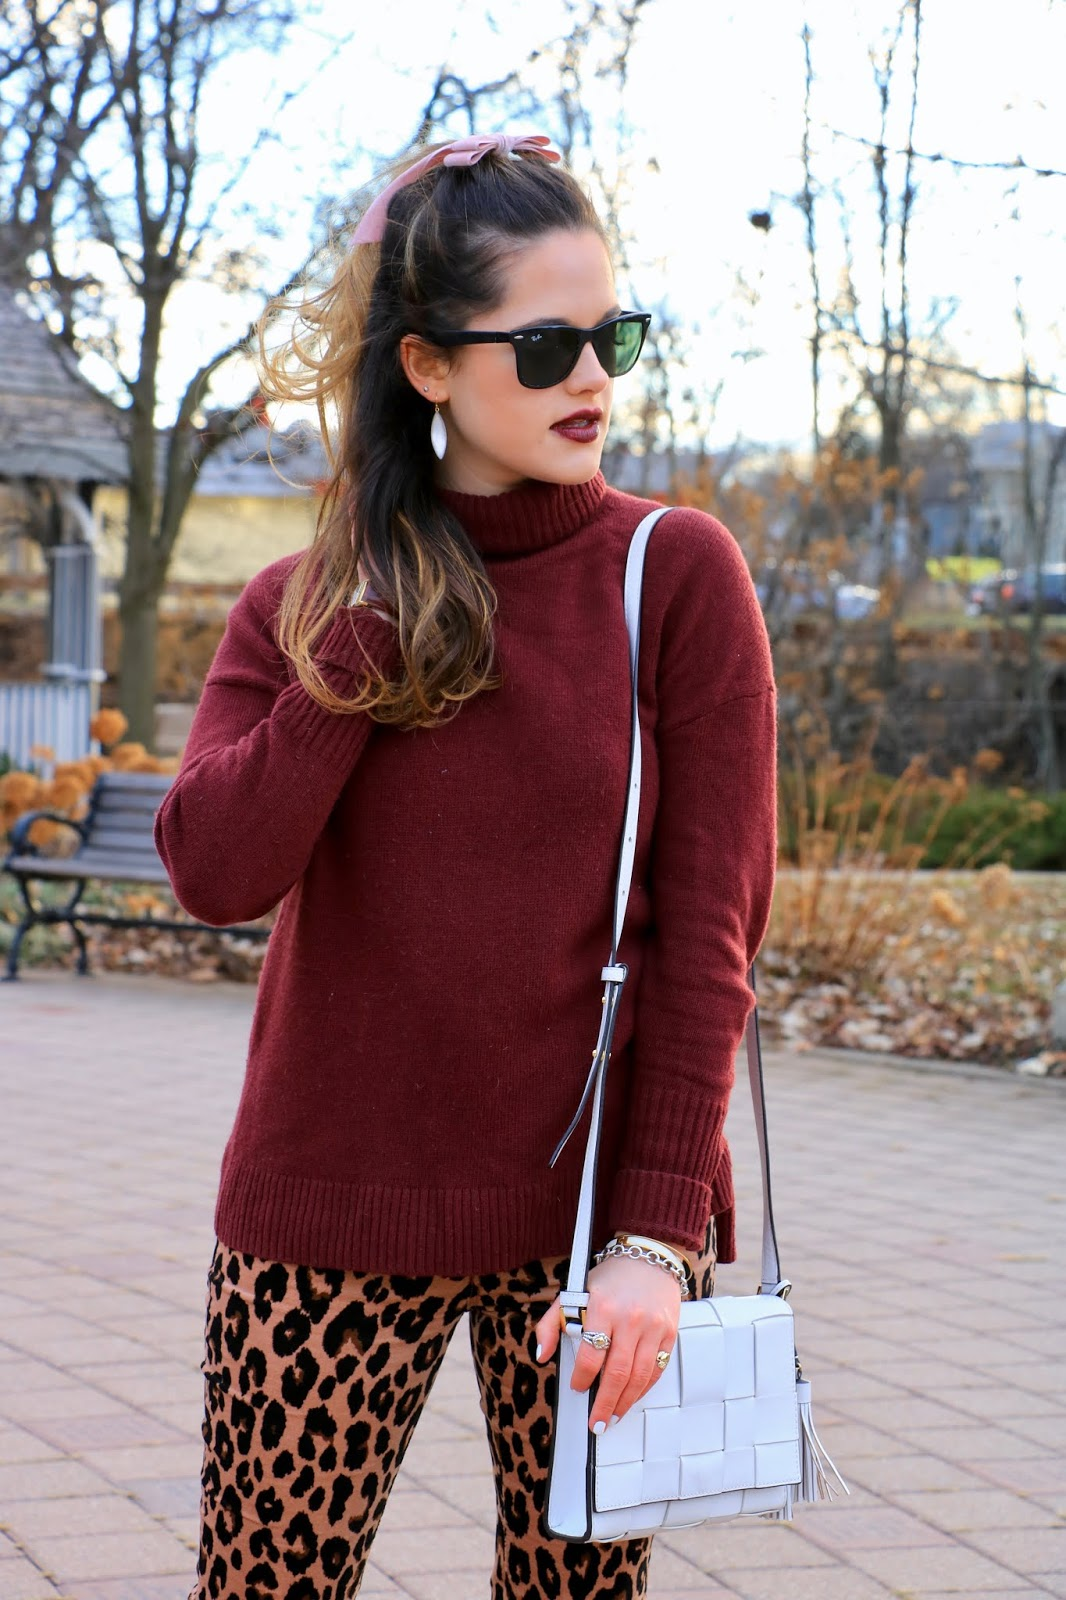 Nyc fashion blogger Kathleen Harper's Valentine's Day outfit idea